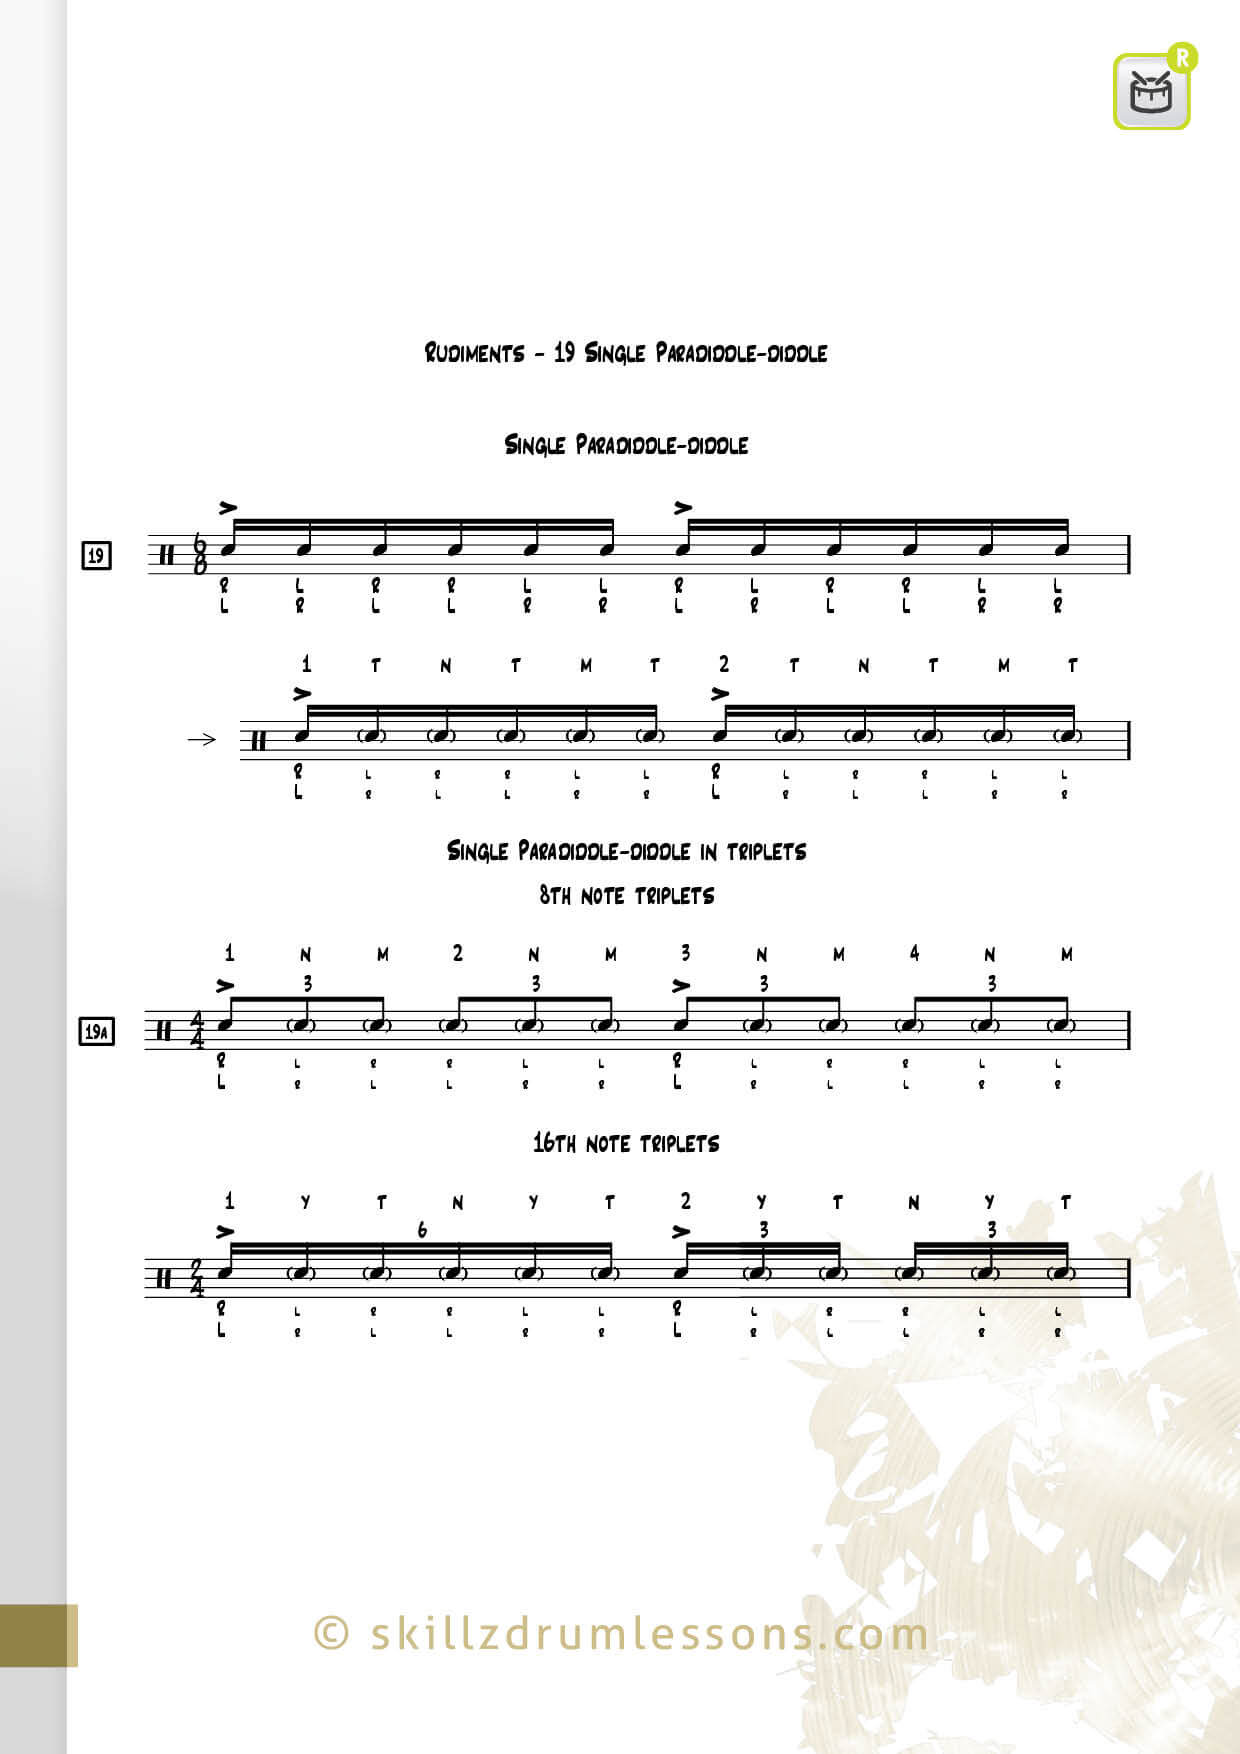 This is an image of the Official 40 Essential P.A.S. Rudiments #19 The Single Paradiddle-diddle by Skillz Drum Lessons